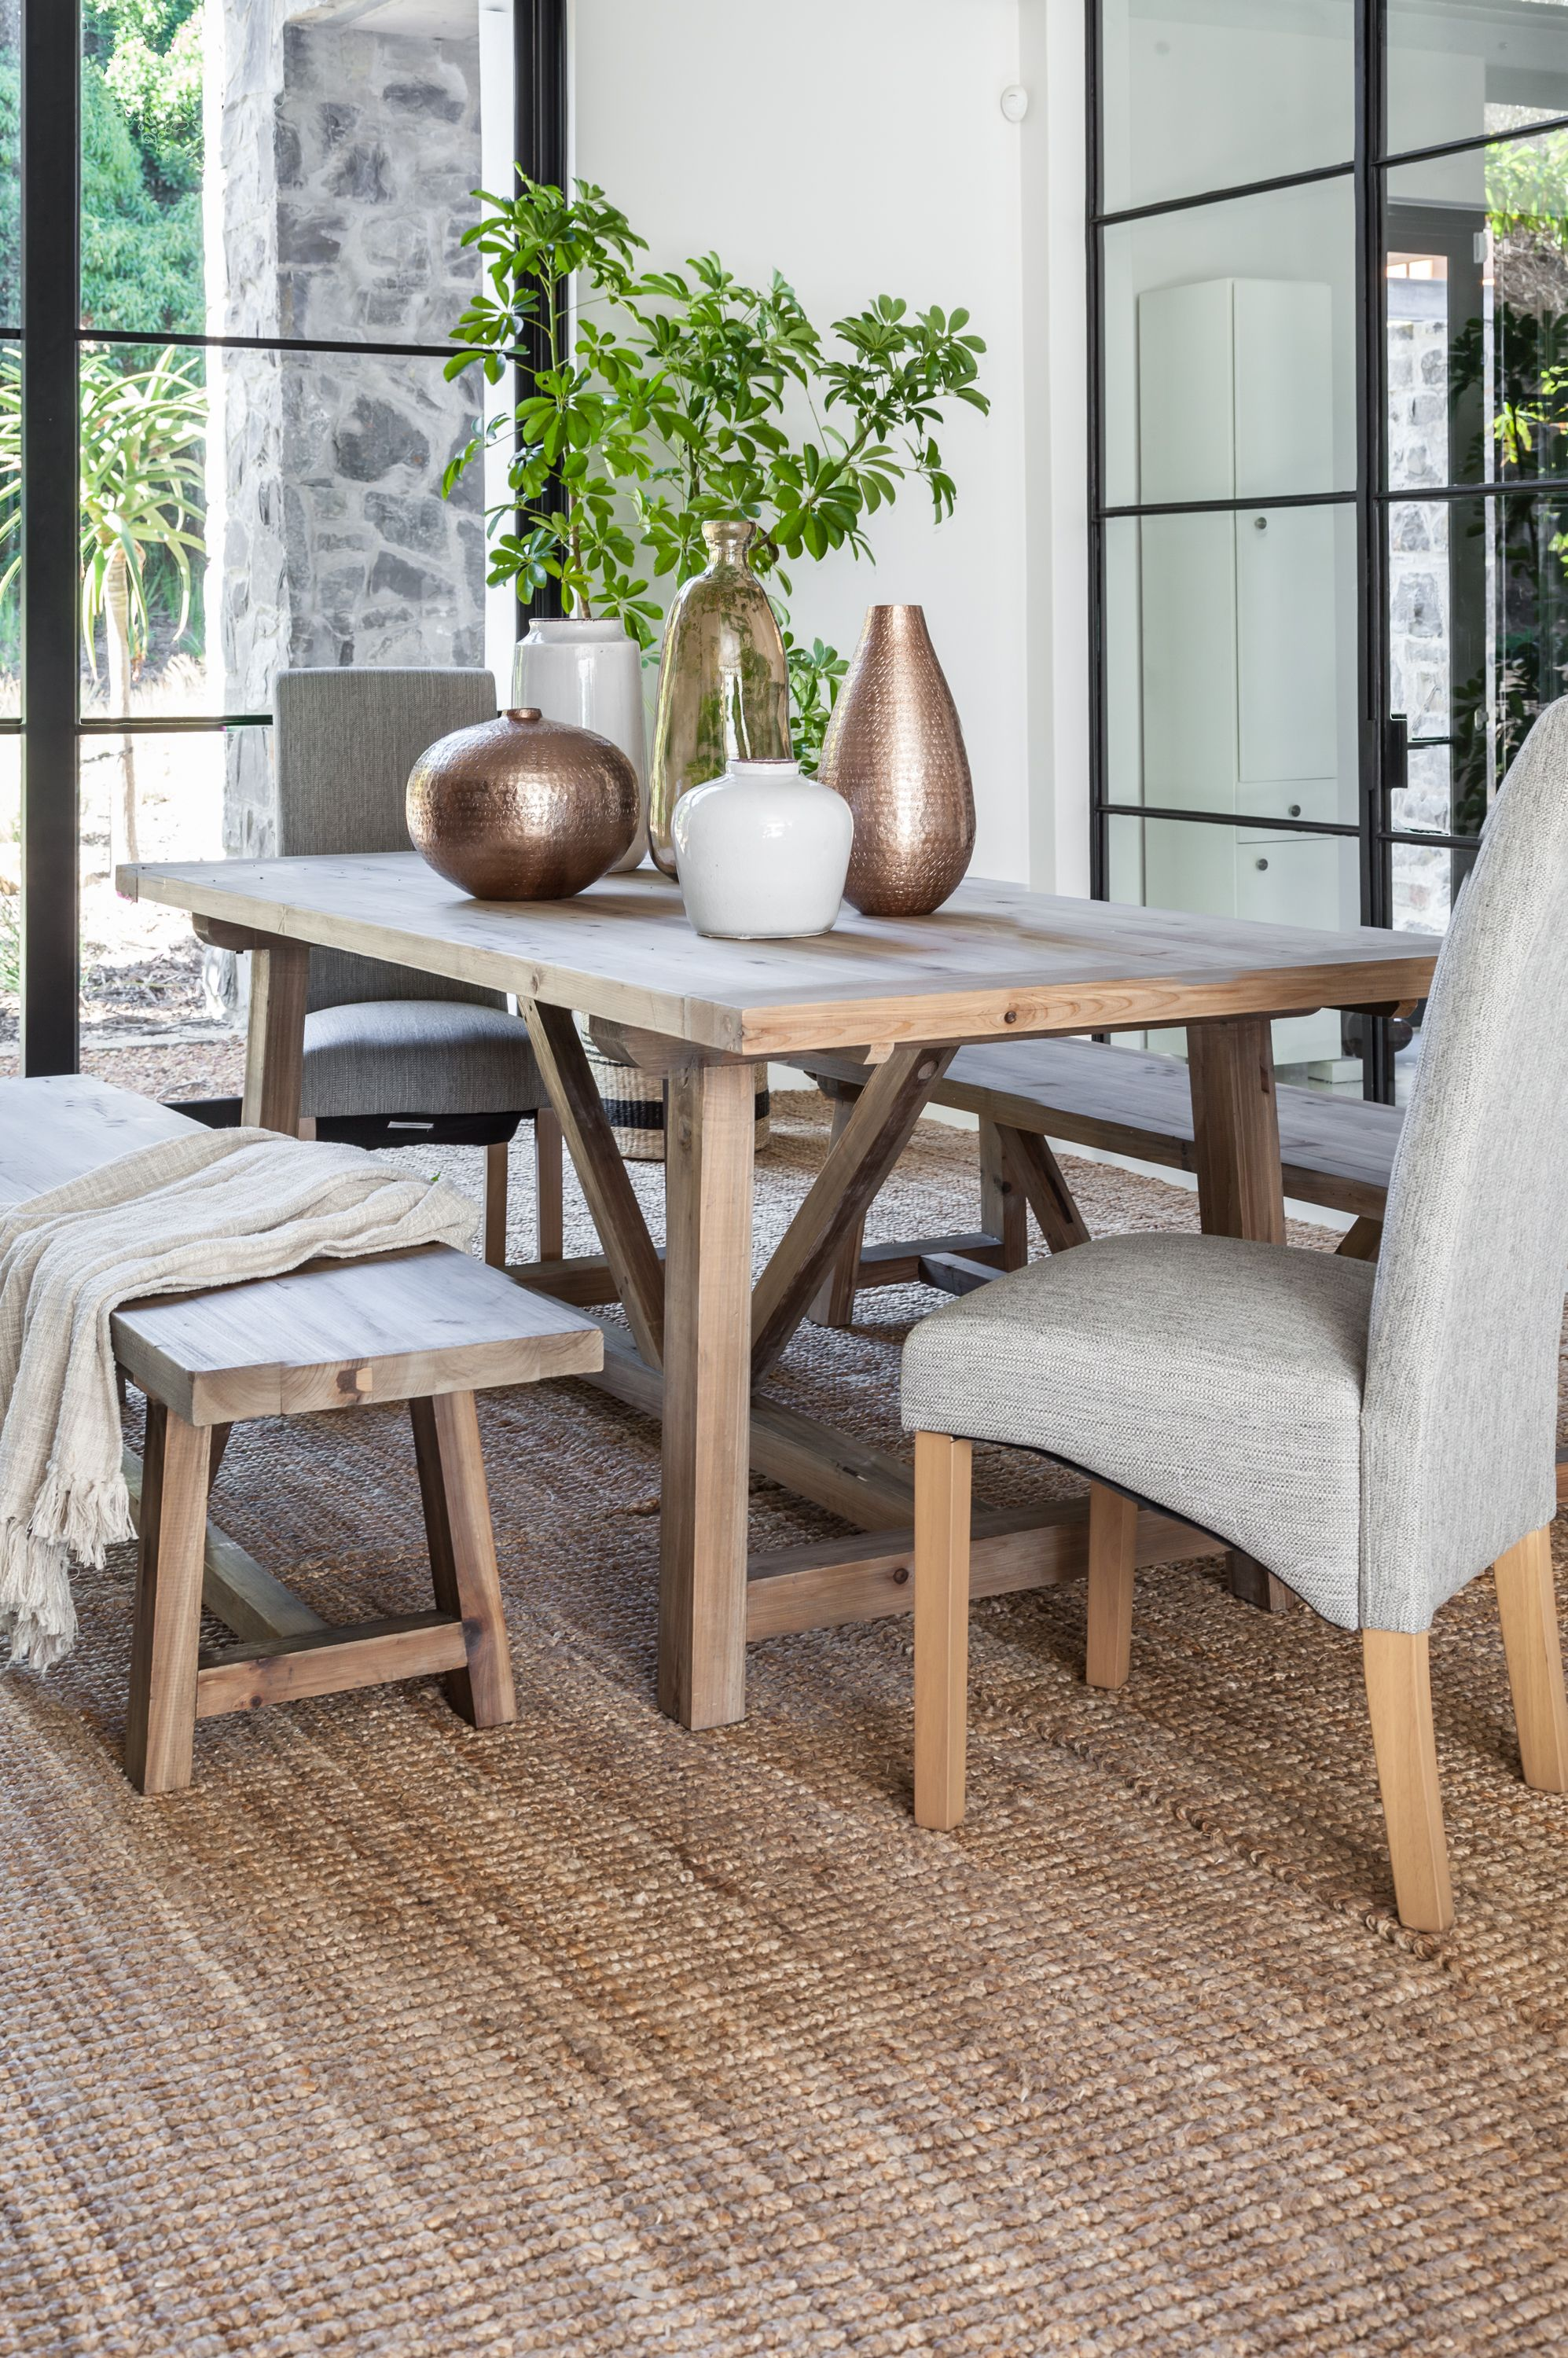 The Lightwood Thomas Dining Table Has An Earthy Look And